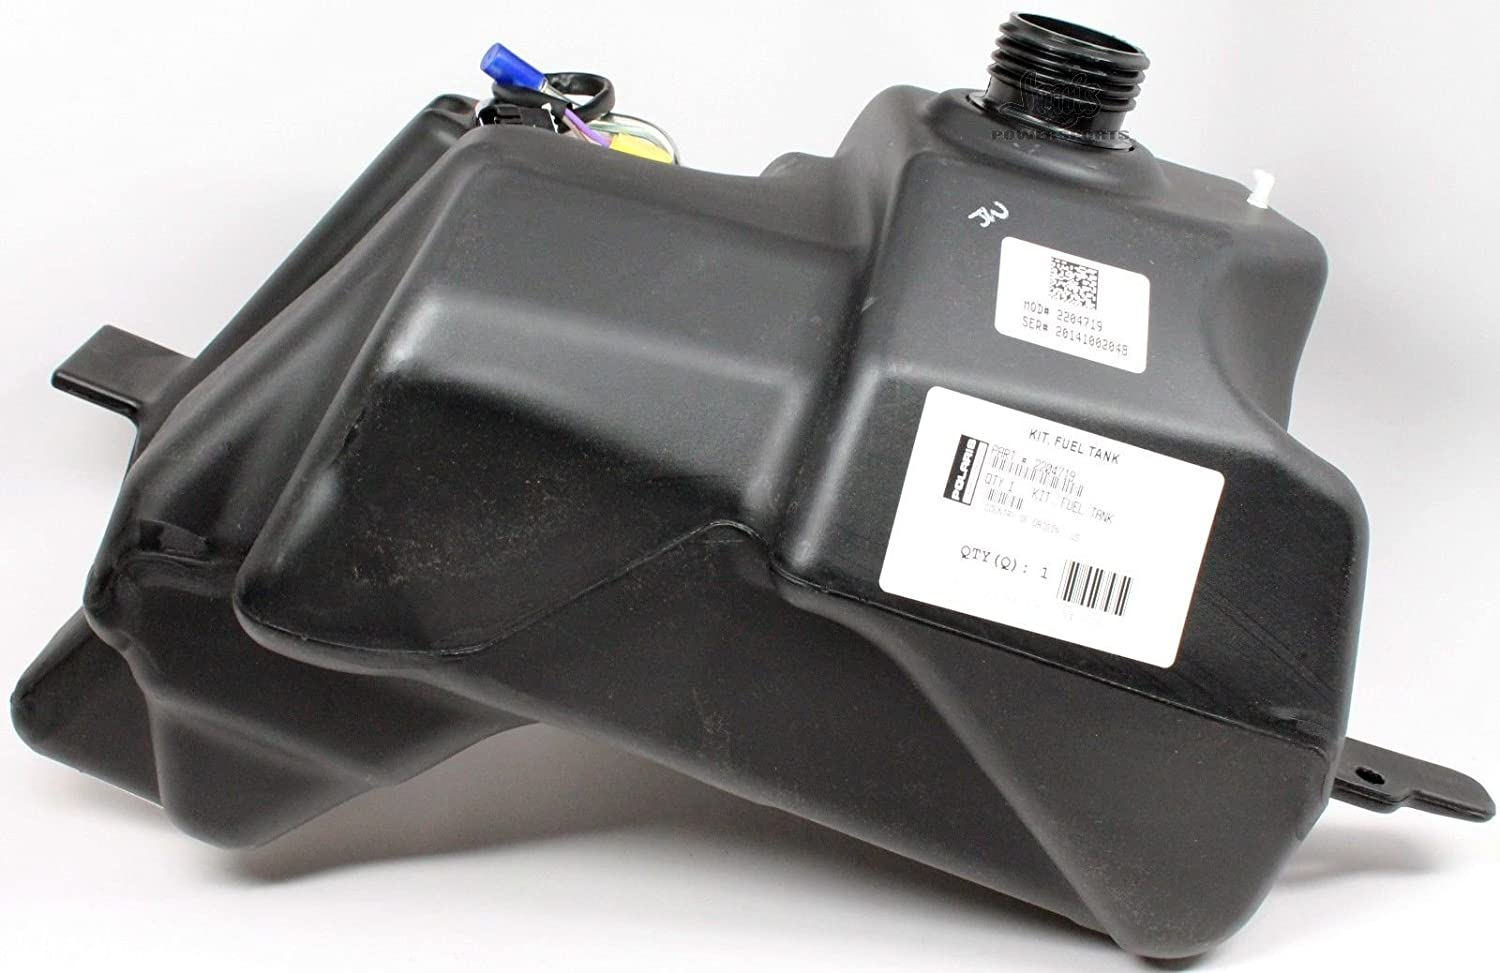 Amazon.com: Polaris 2005-2008 Sportsman 500 700 800 Fuel Tank Pump Assembly  2204719 New OEM: Automotive